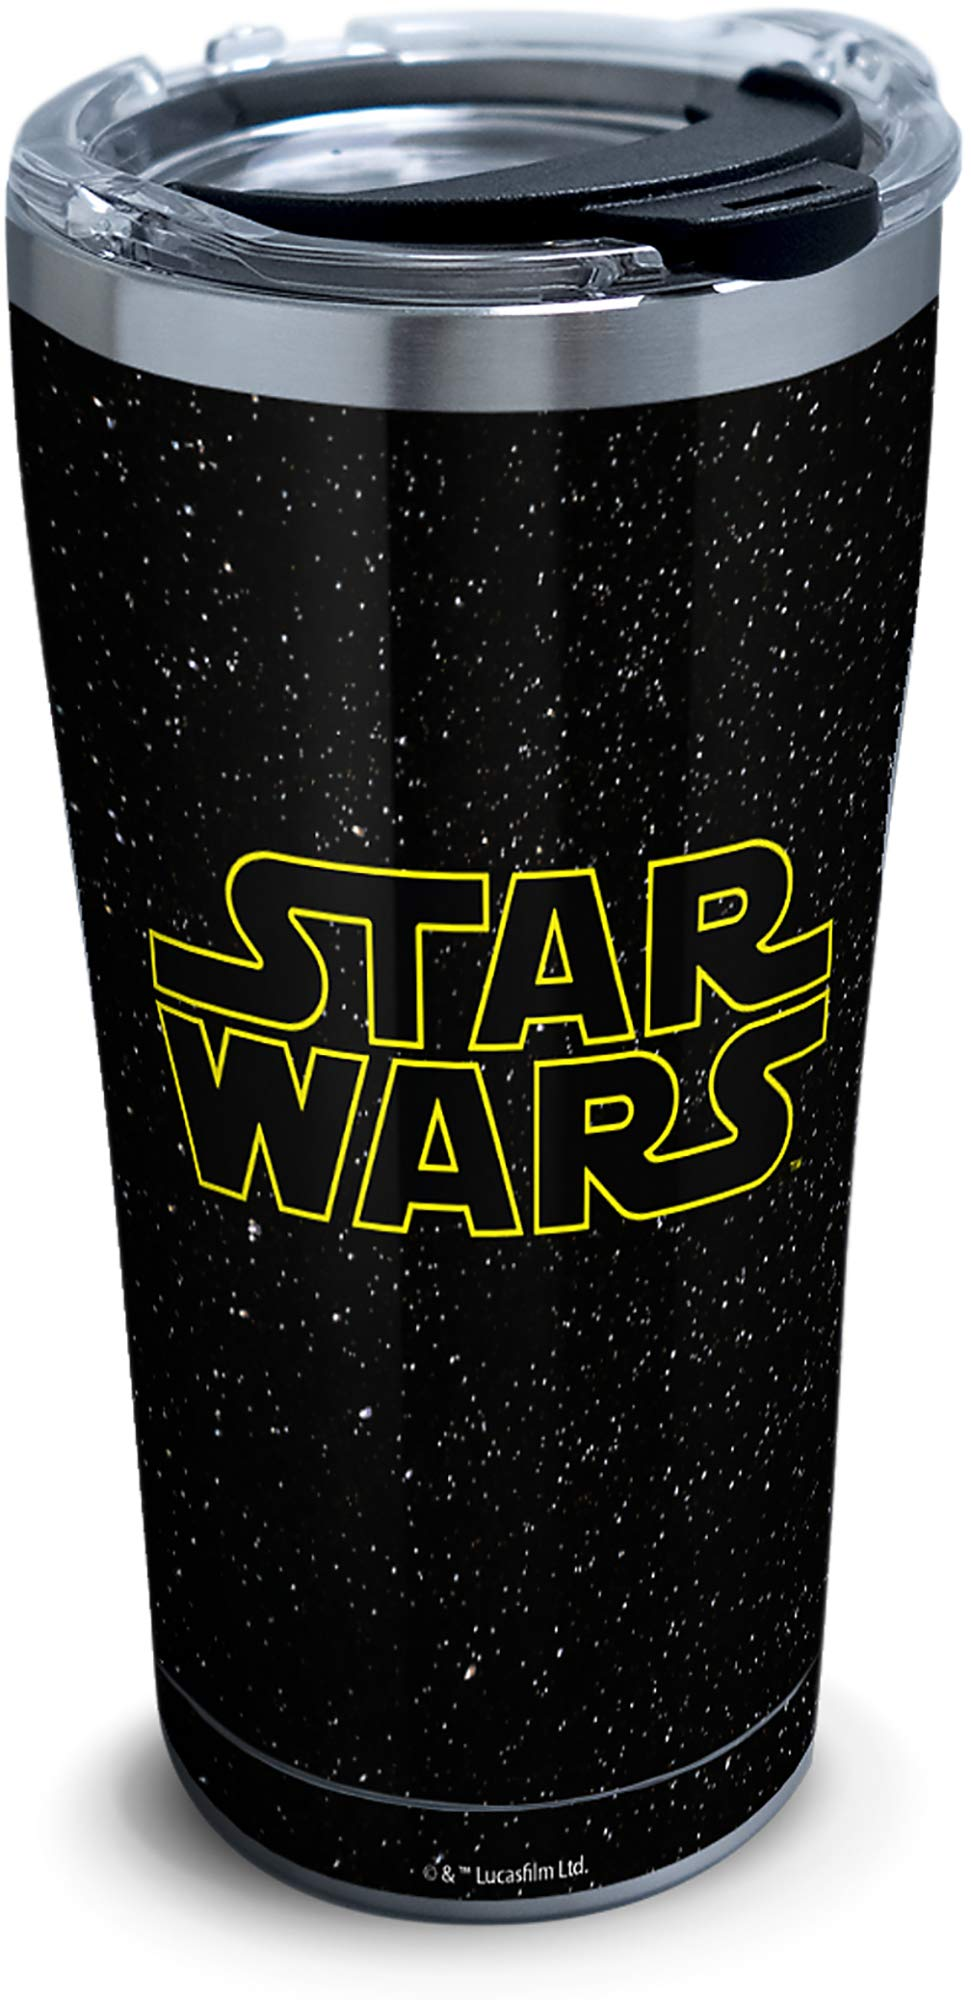 Tervis 1338791 Star Wars Classic 18/8 Stainless Steel Insulated Travel Tumbler & Lid, 20 oz, Silver by Tervis